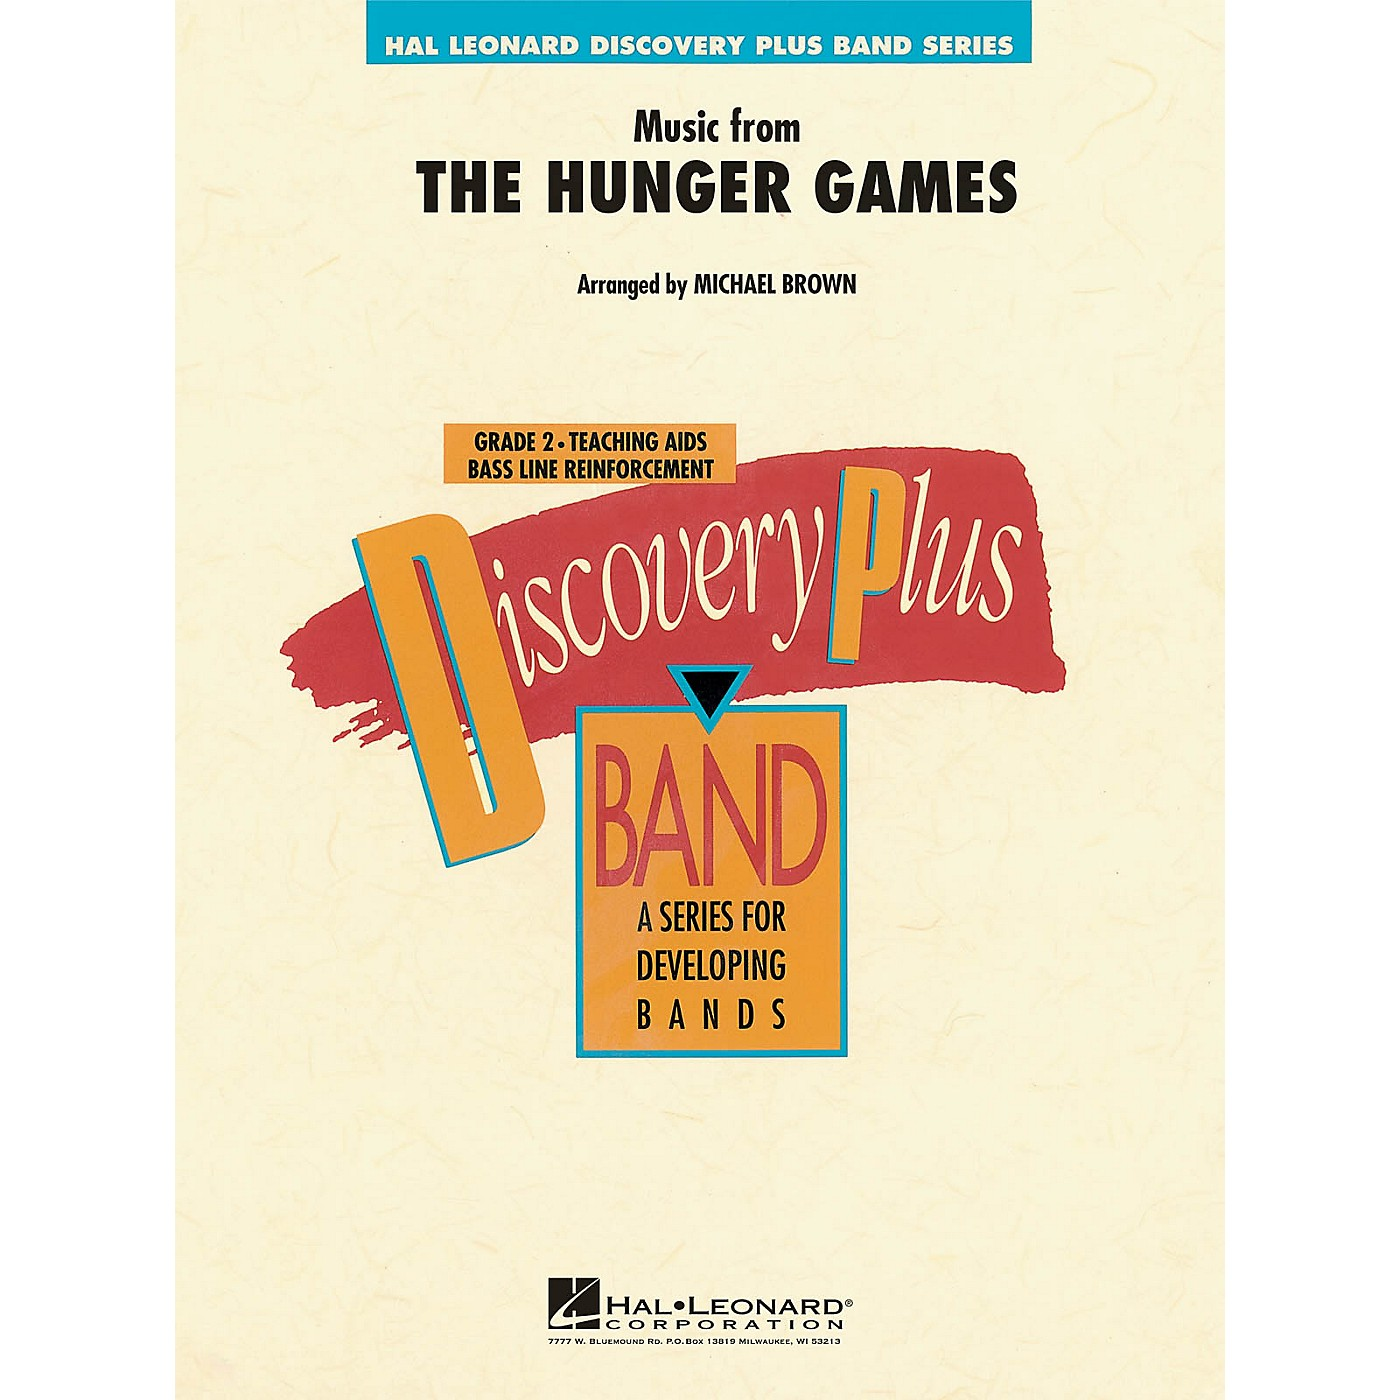 Hal Leonard Music from The Hunger Games - Discovery Plus Concert Band Series Level 2 arranged by Michael Brown thumbnail